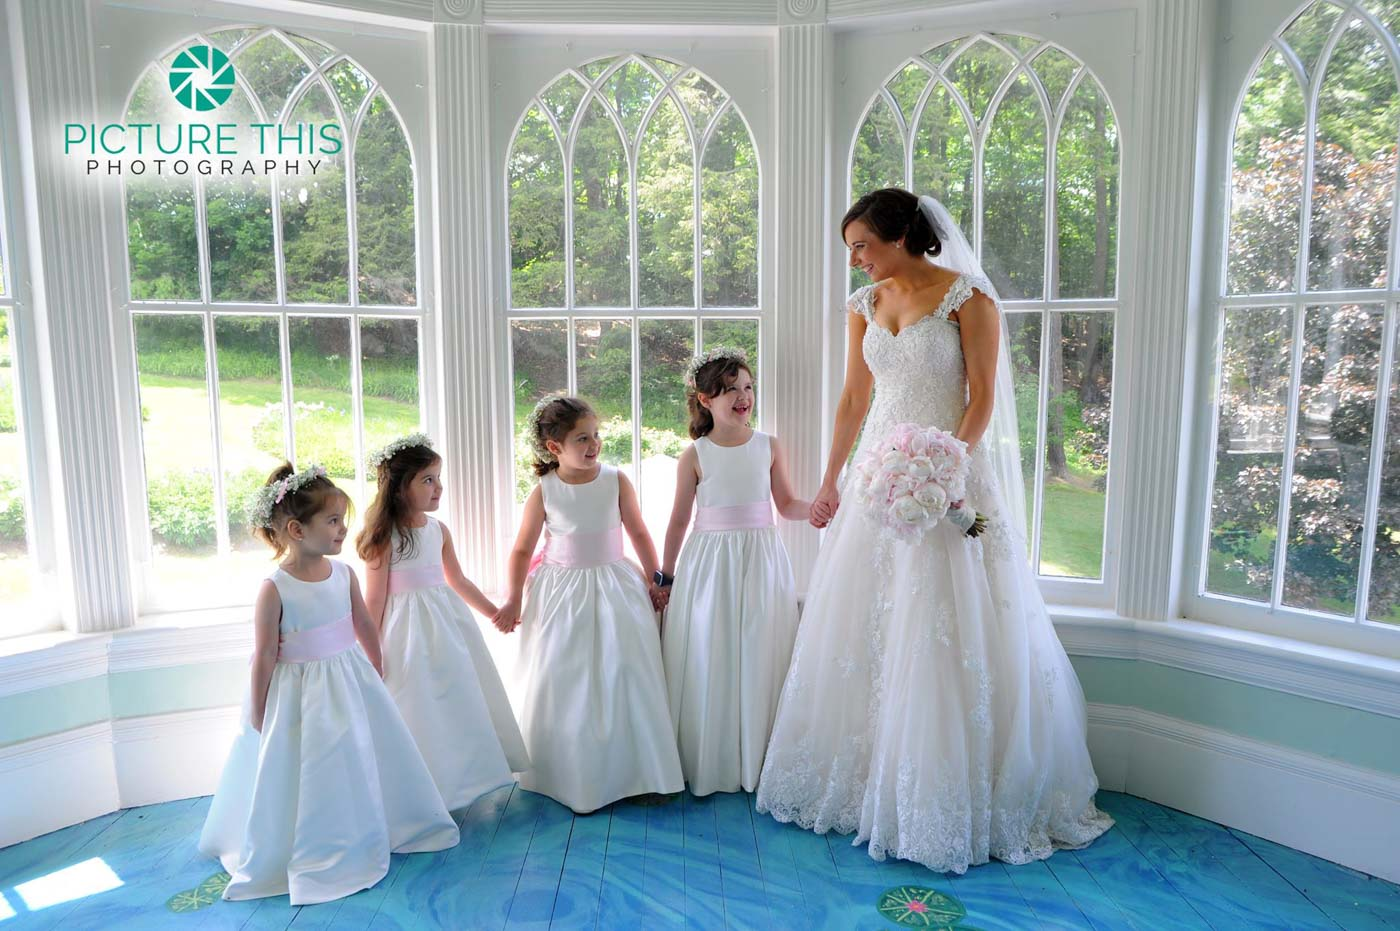 immaculate-bride-with-four-little-girls-on-lilly-pond-porch